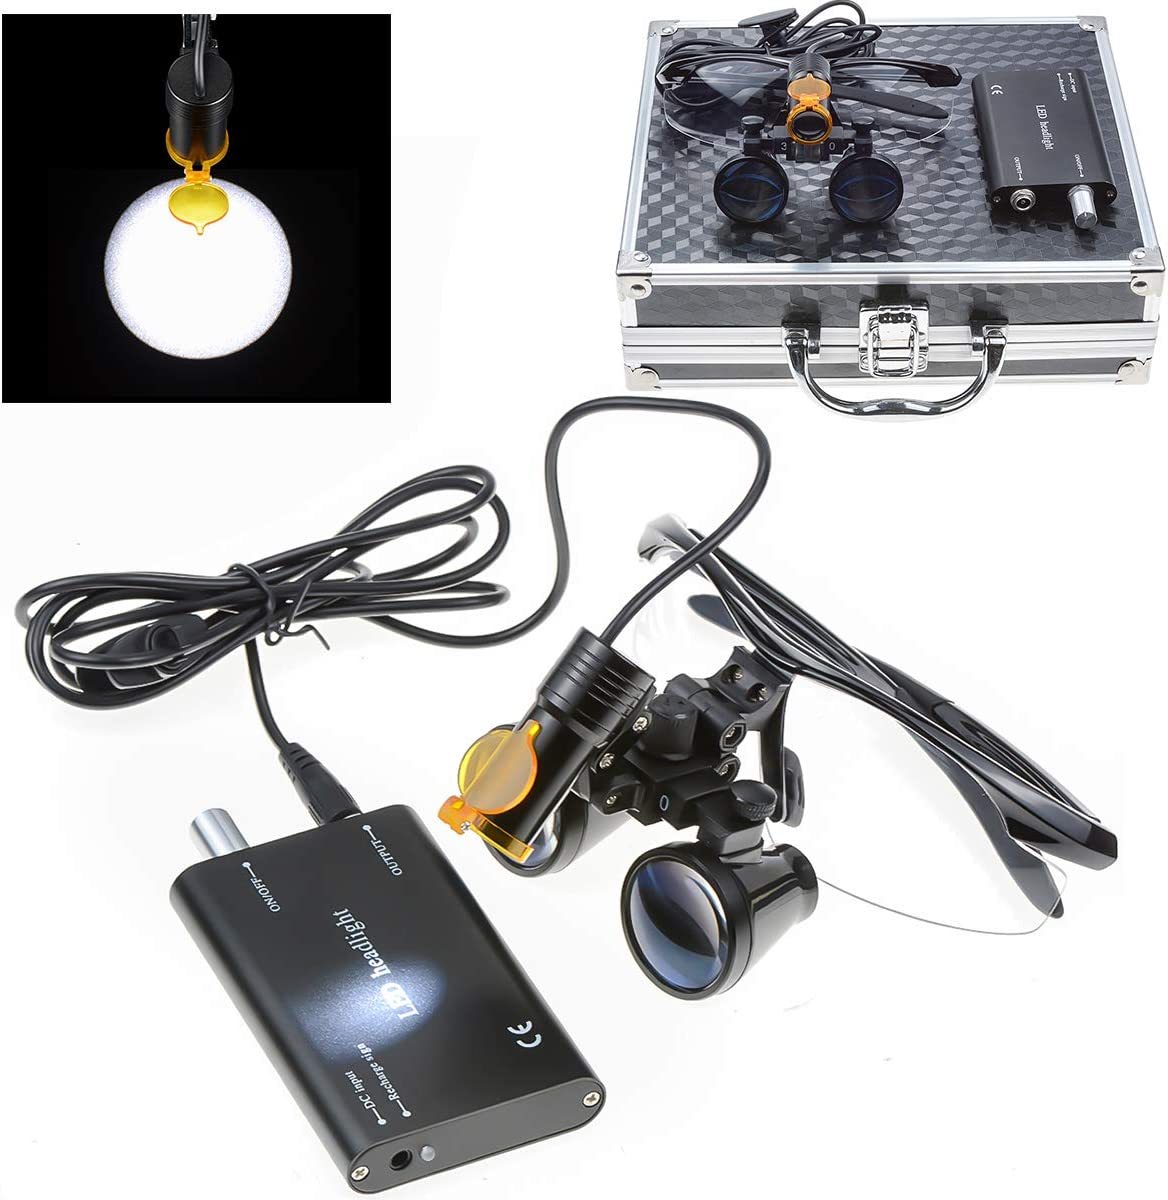 EAST Brand 5W LED Headlight Lamp Plastic wit On Fees Cheap free Type Filter Clip